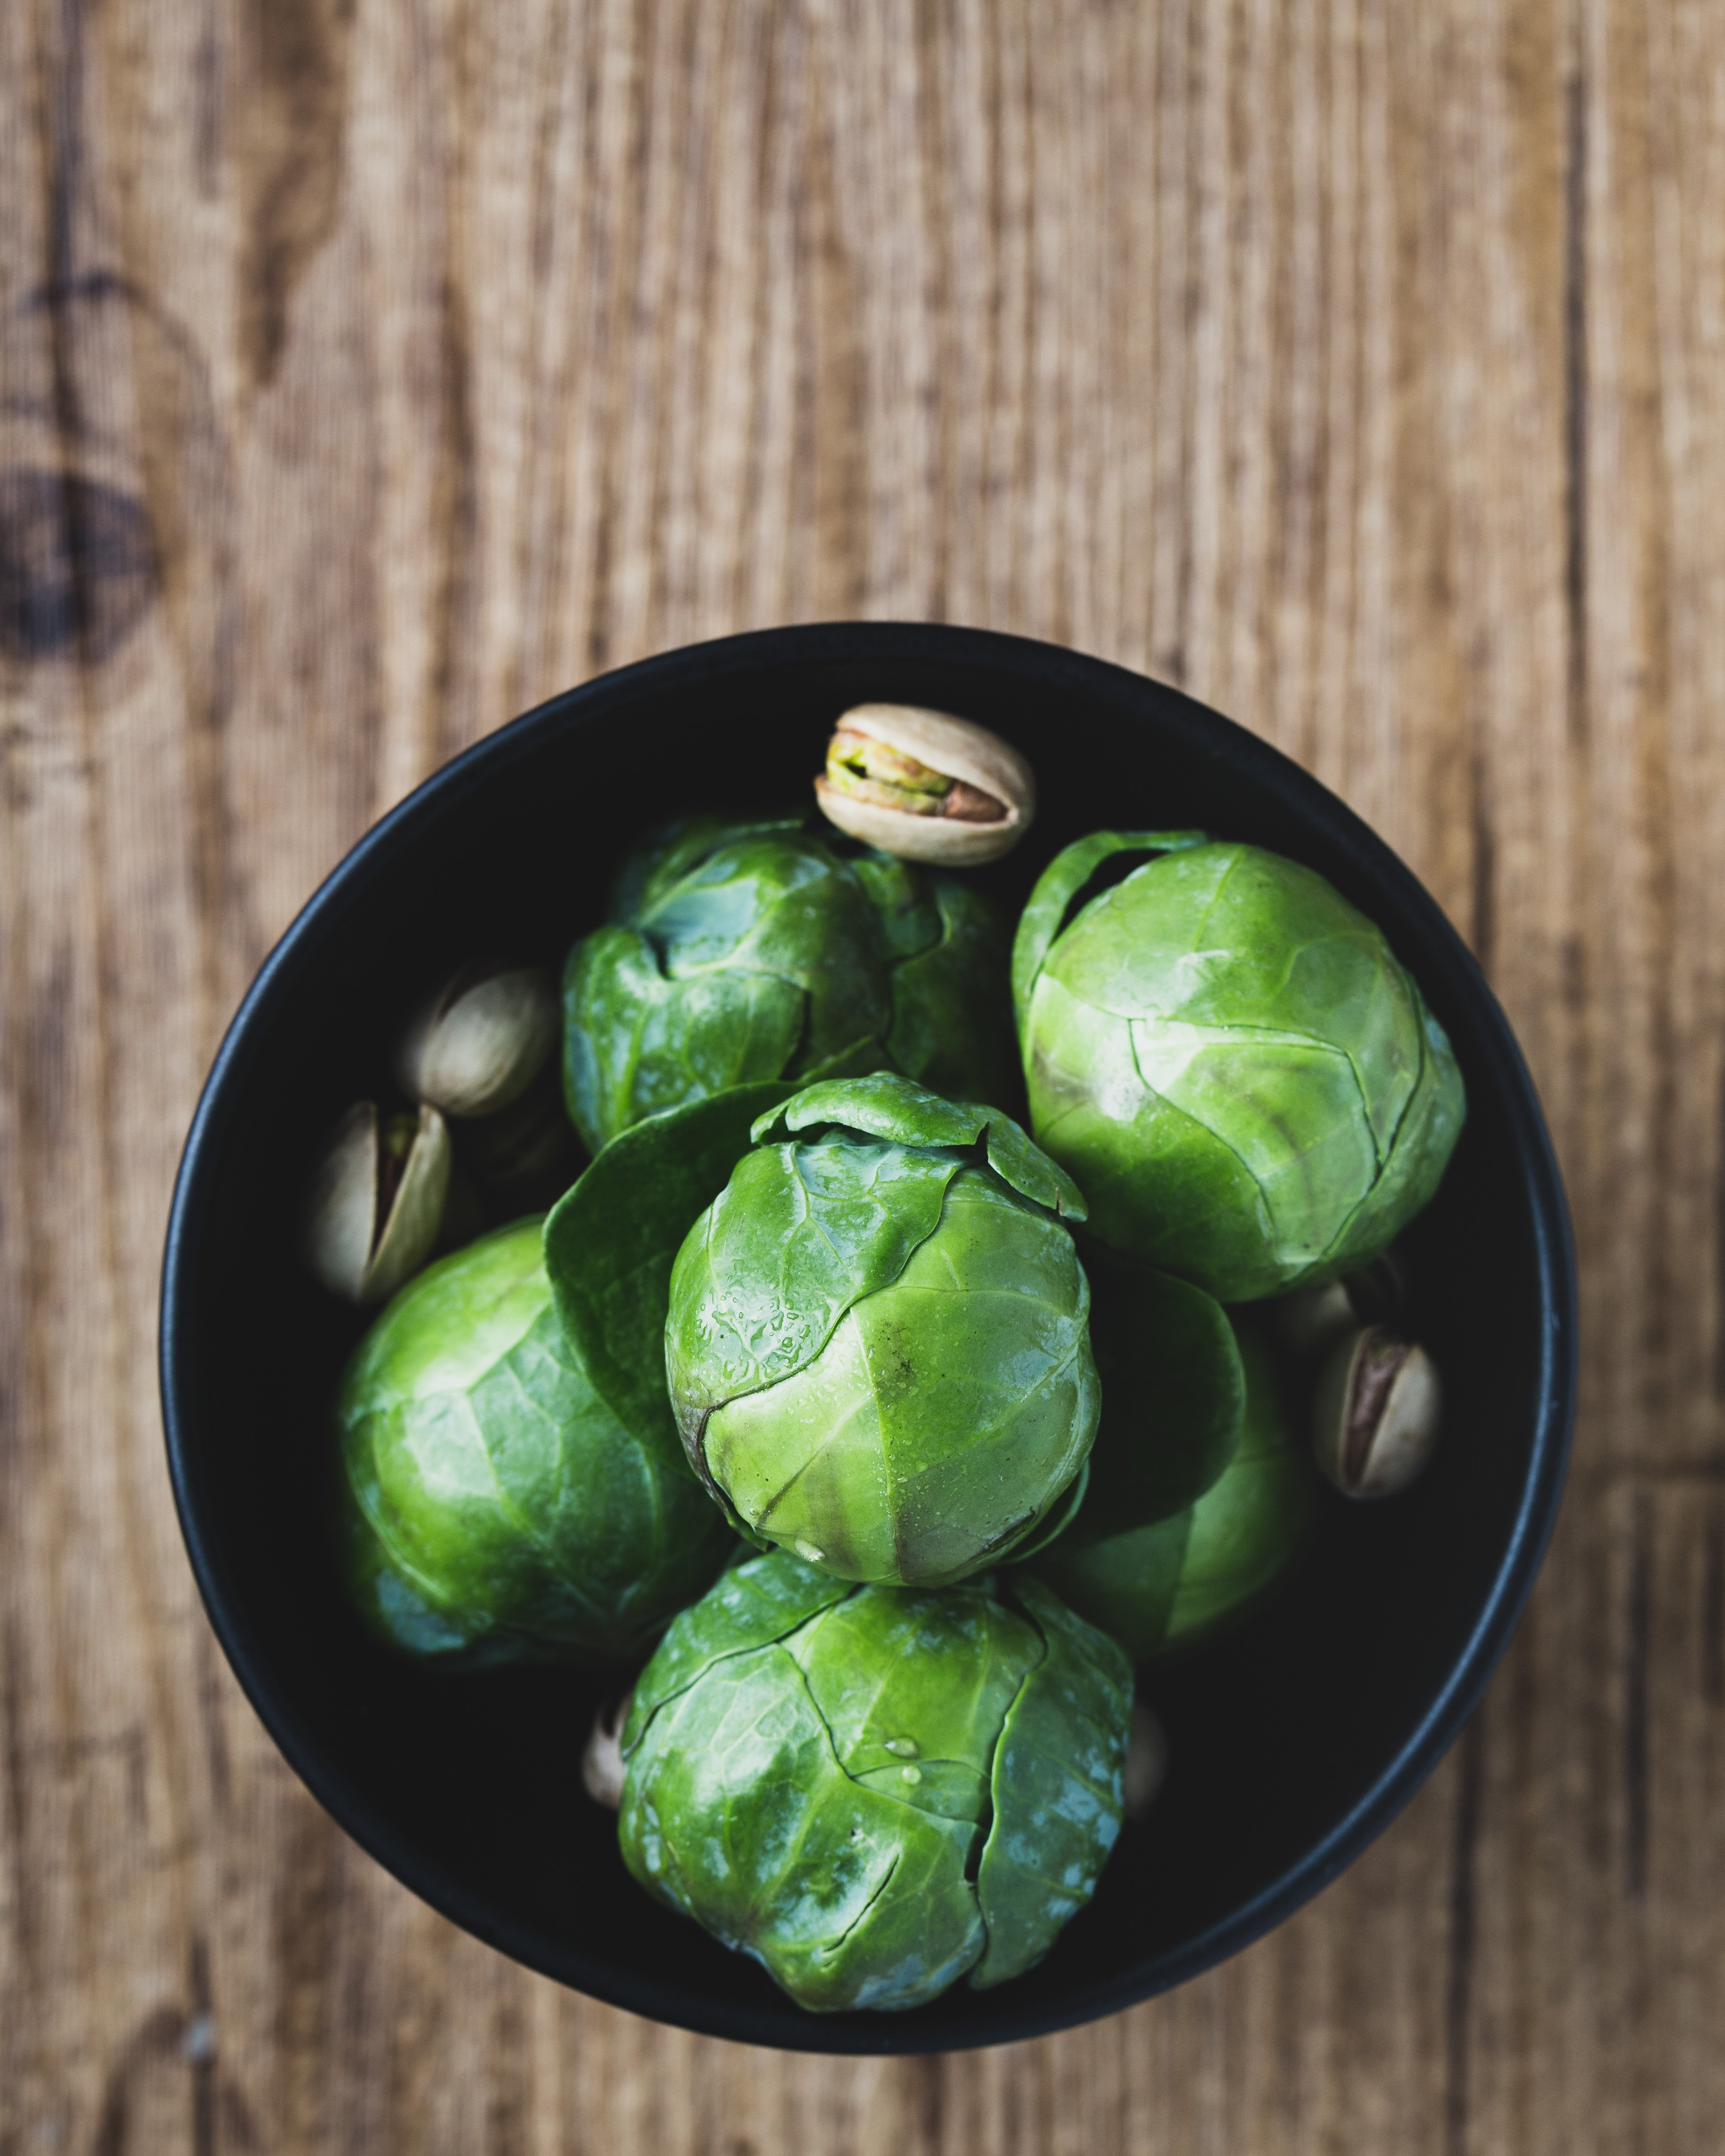 Brussel sprouts with pistachios